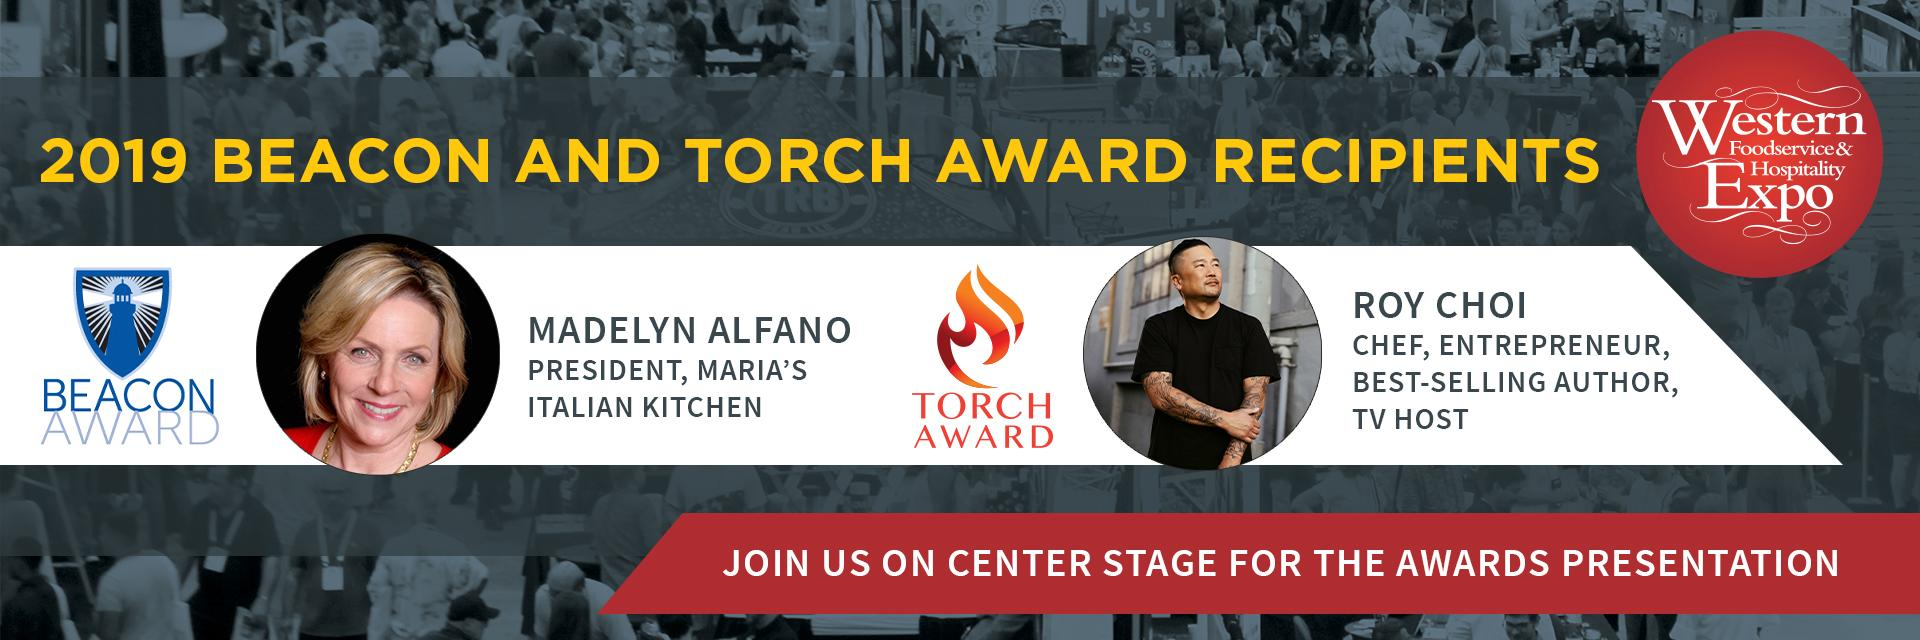 Western Food Expo Torch Award Beacon Award Special Events